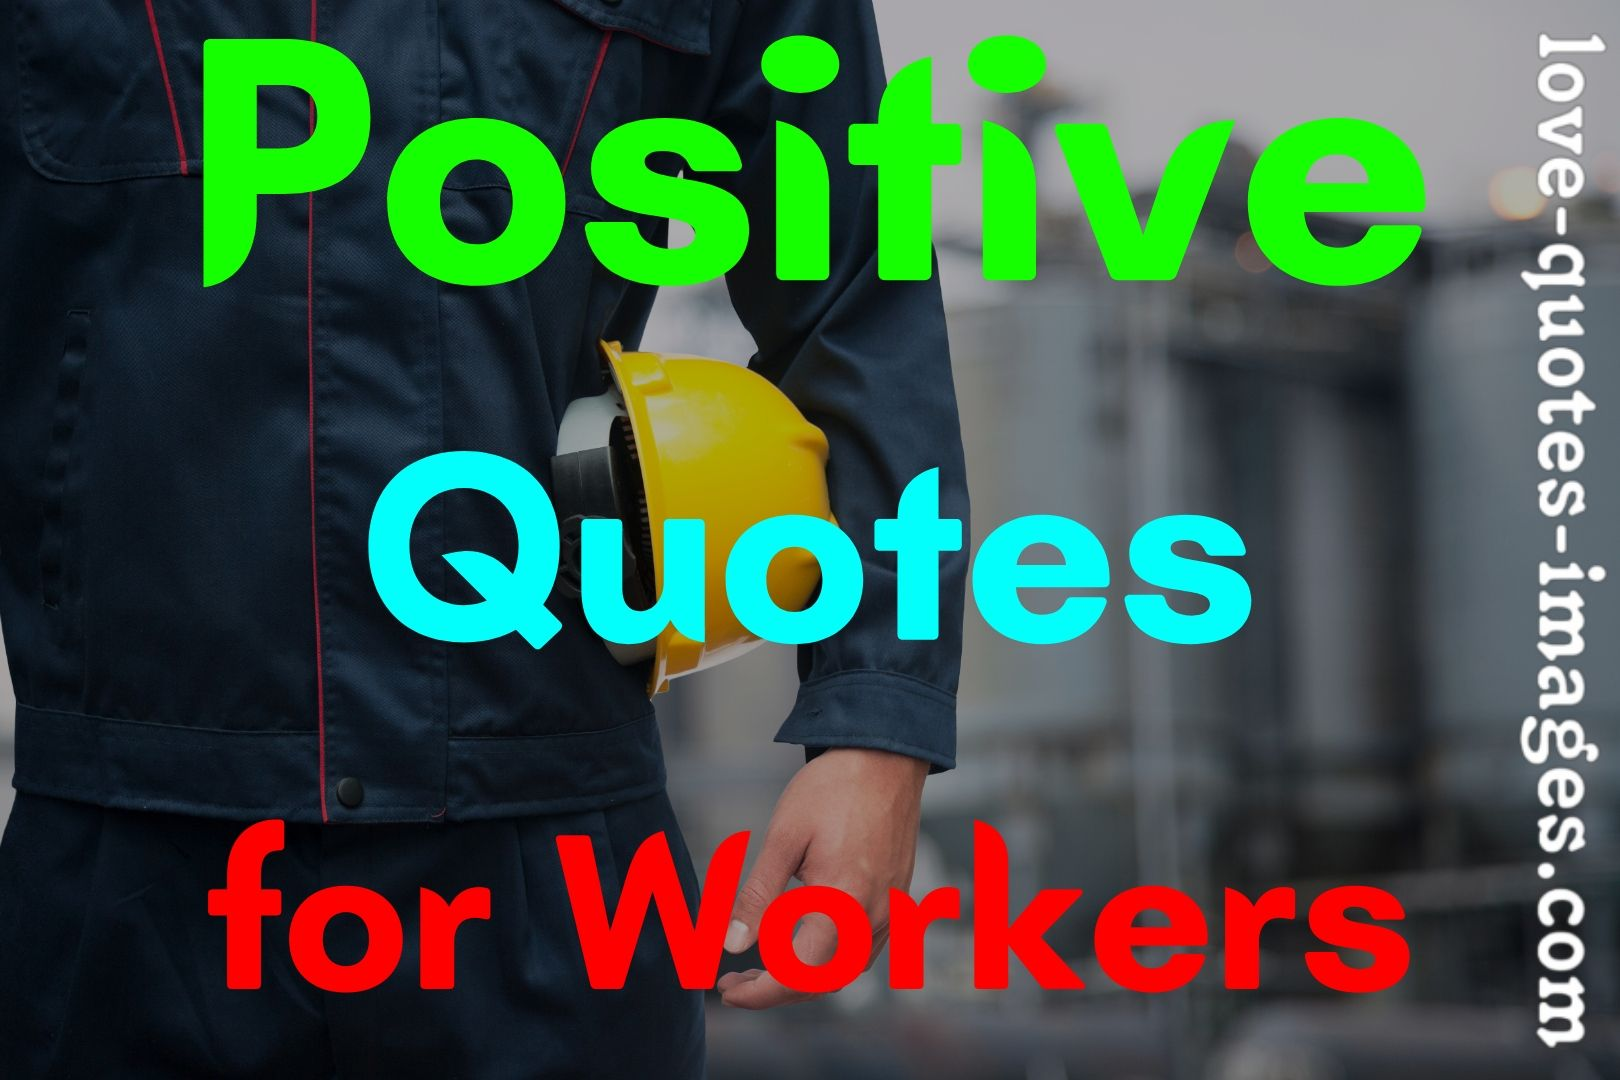 Positive Quotes for Workers